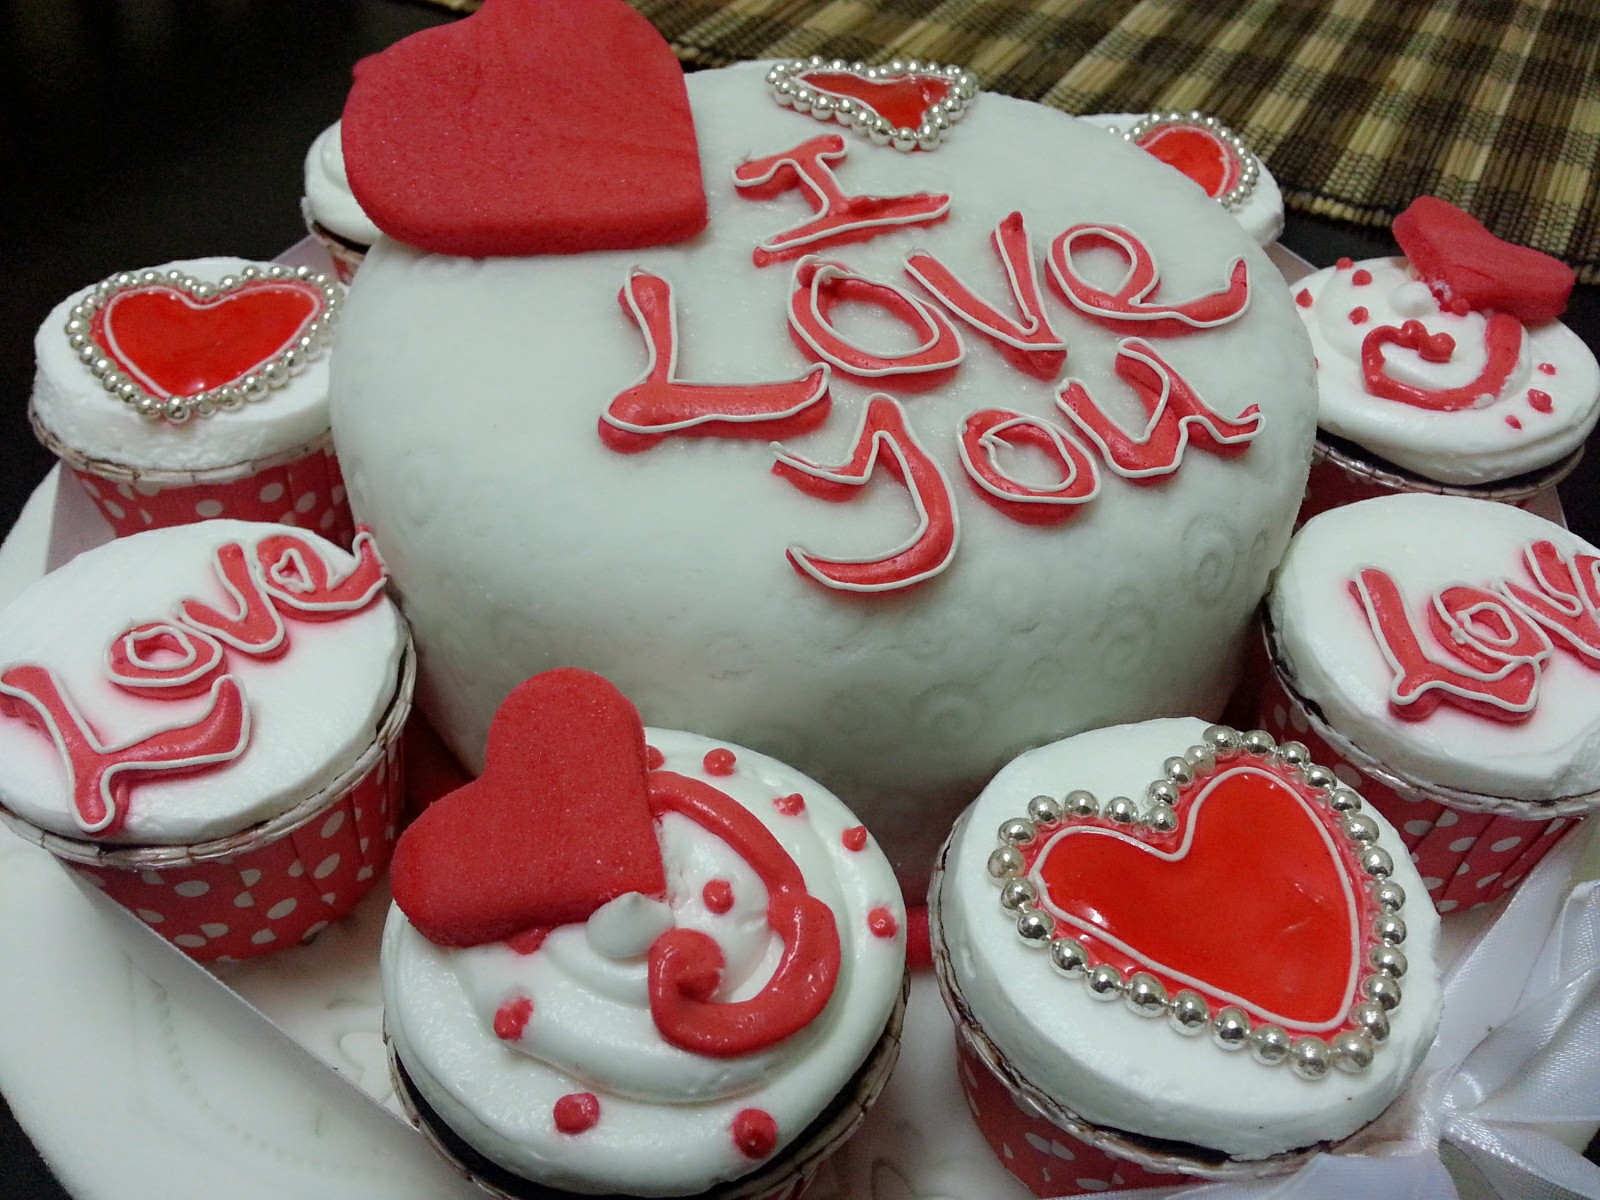 Images Of I Love U Cake : Vanilla Pastry: I Love You Cake and Cupcakes